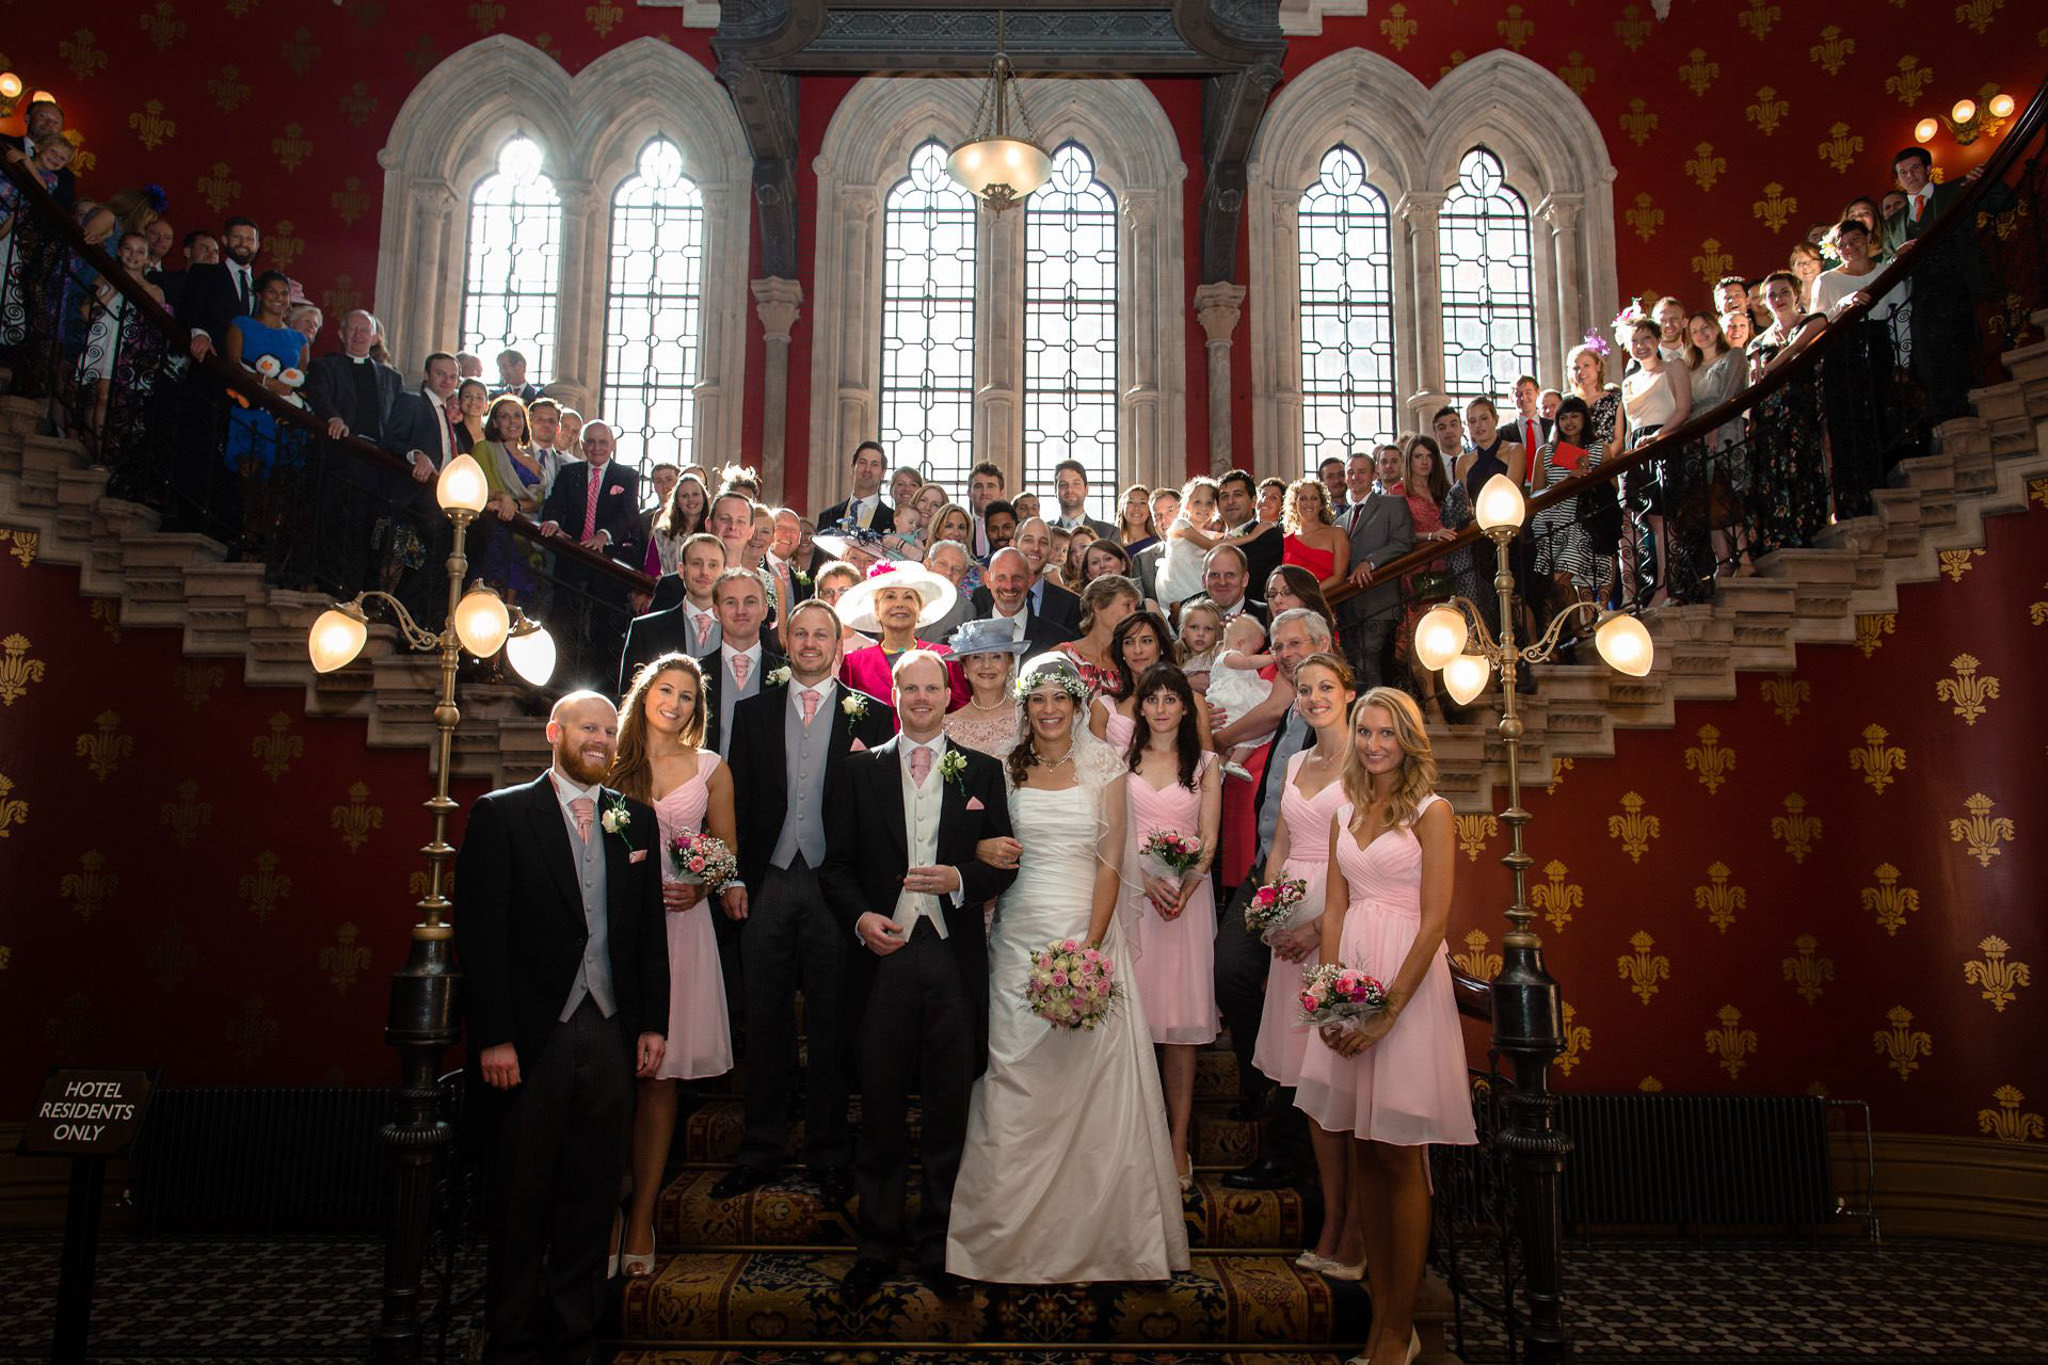 St. Pancras hotel wedding group photo on the staircase